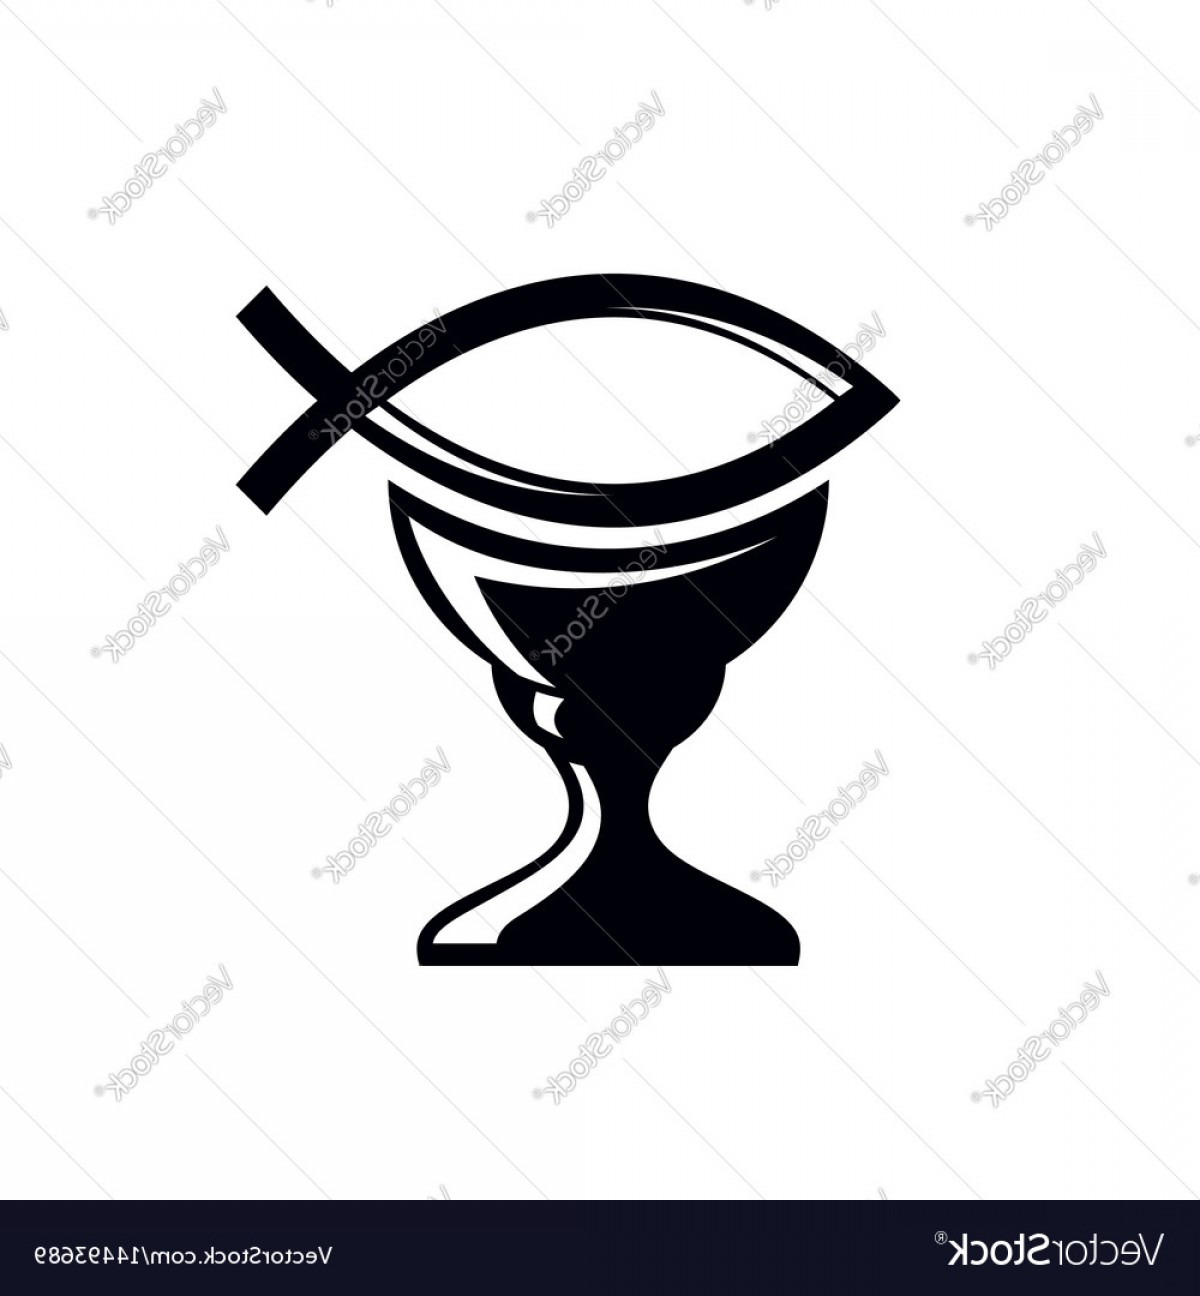 Christ Fish Vector: The Cup Of Christ And The Symbol Of Fish Vector